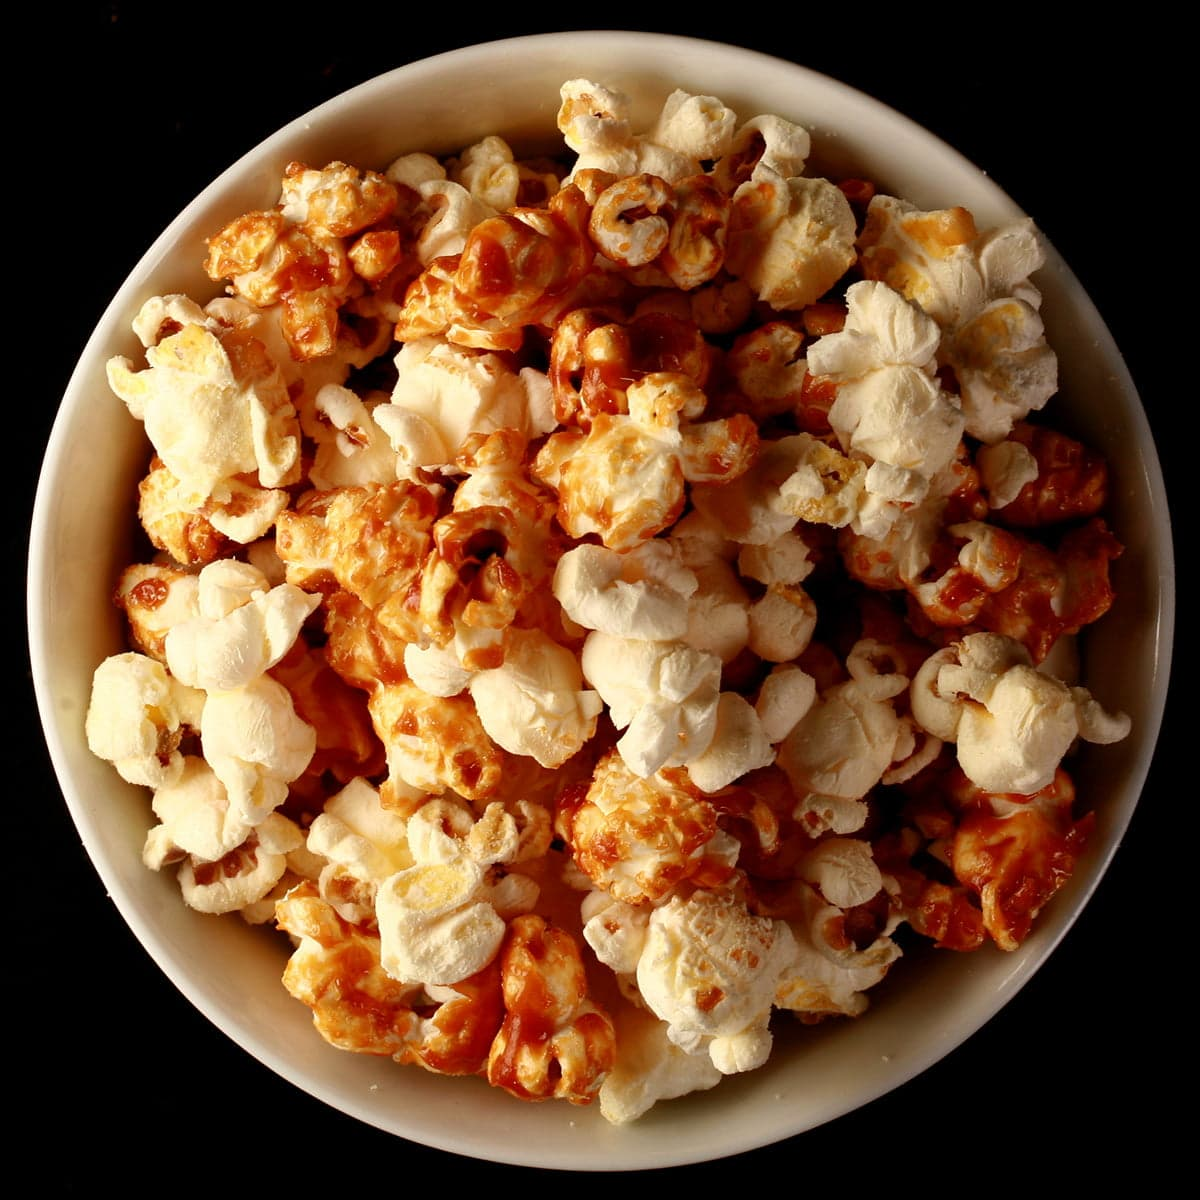 Close up photo of a bowl of two-tone popcorn: Maple White Cheddarl Popcorn. Half of the popcorn is covered with maple caramel, the other half is white - white cheddar.